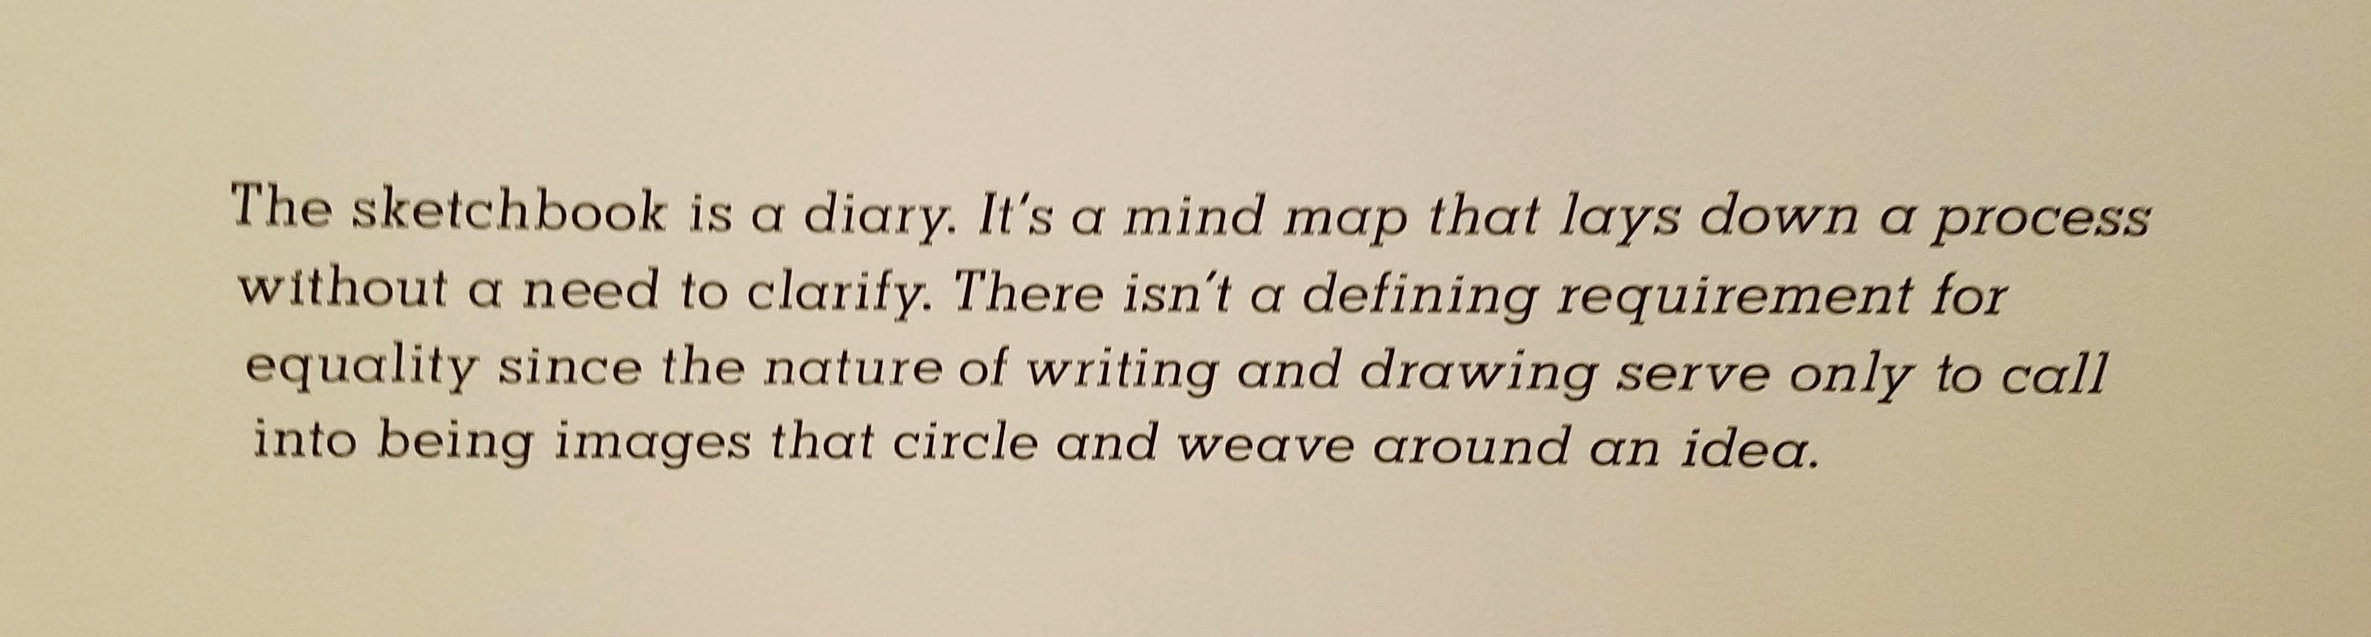 Quote from an artist displayed at the Isabella Stewart Gardner Museum in Boston, MA.